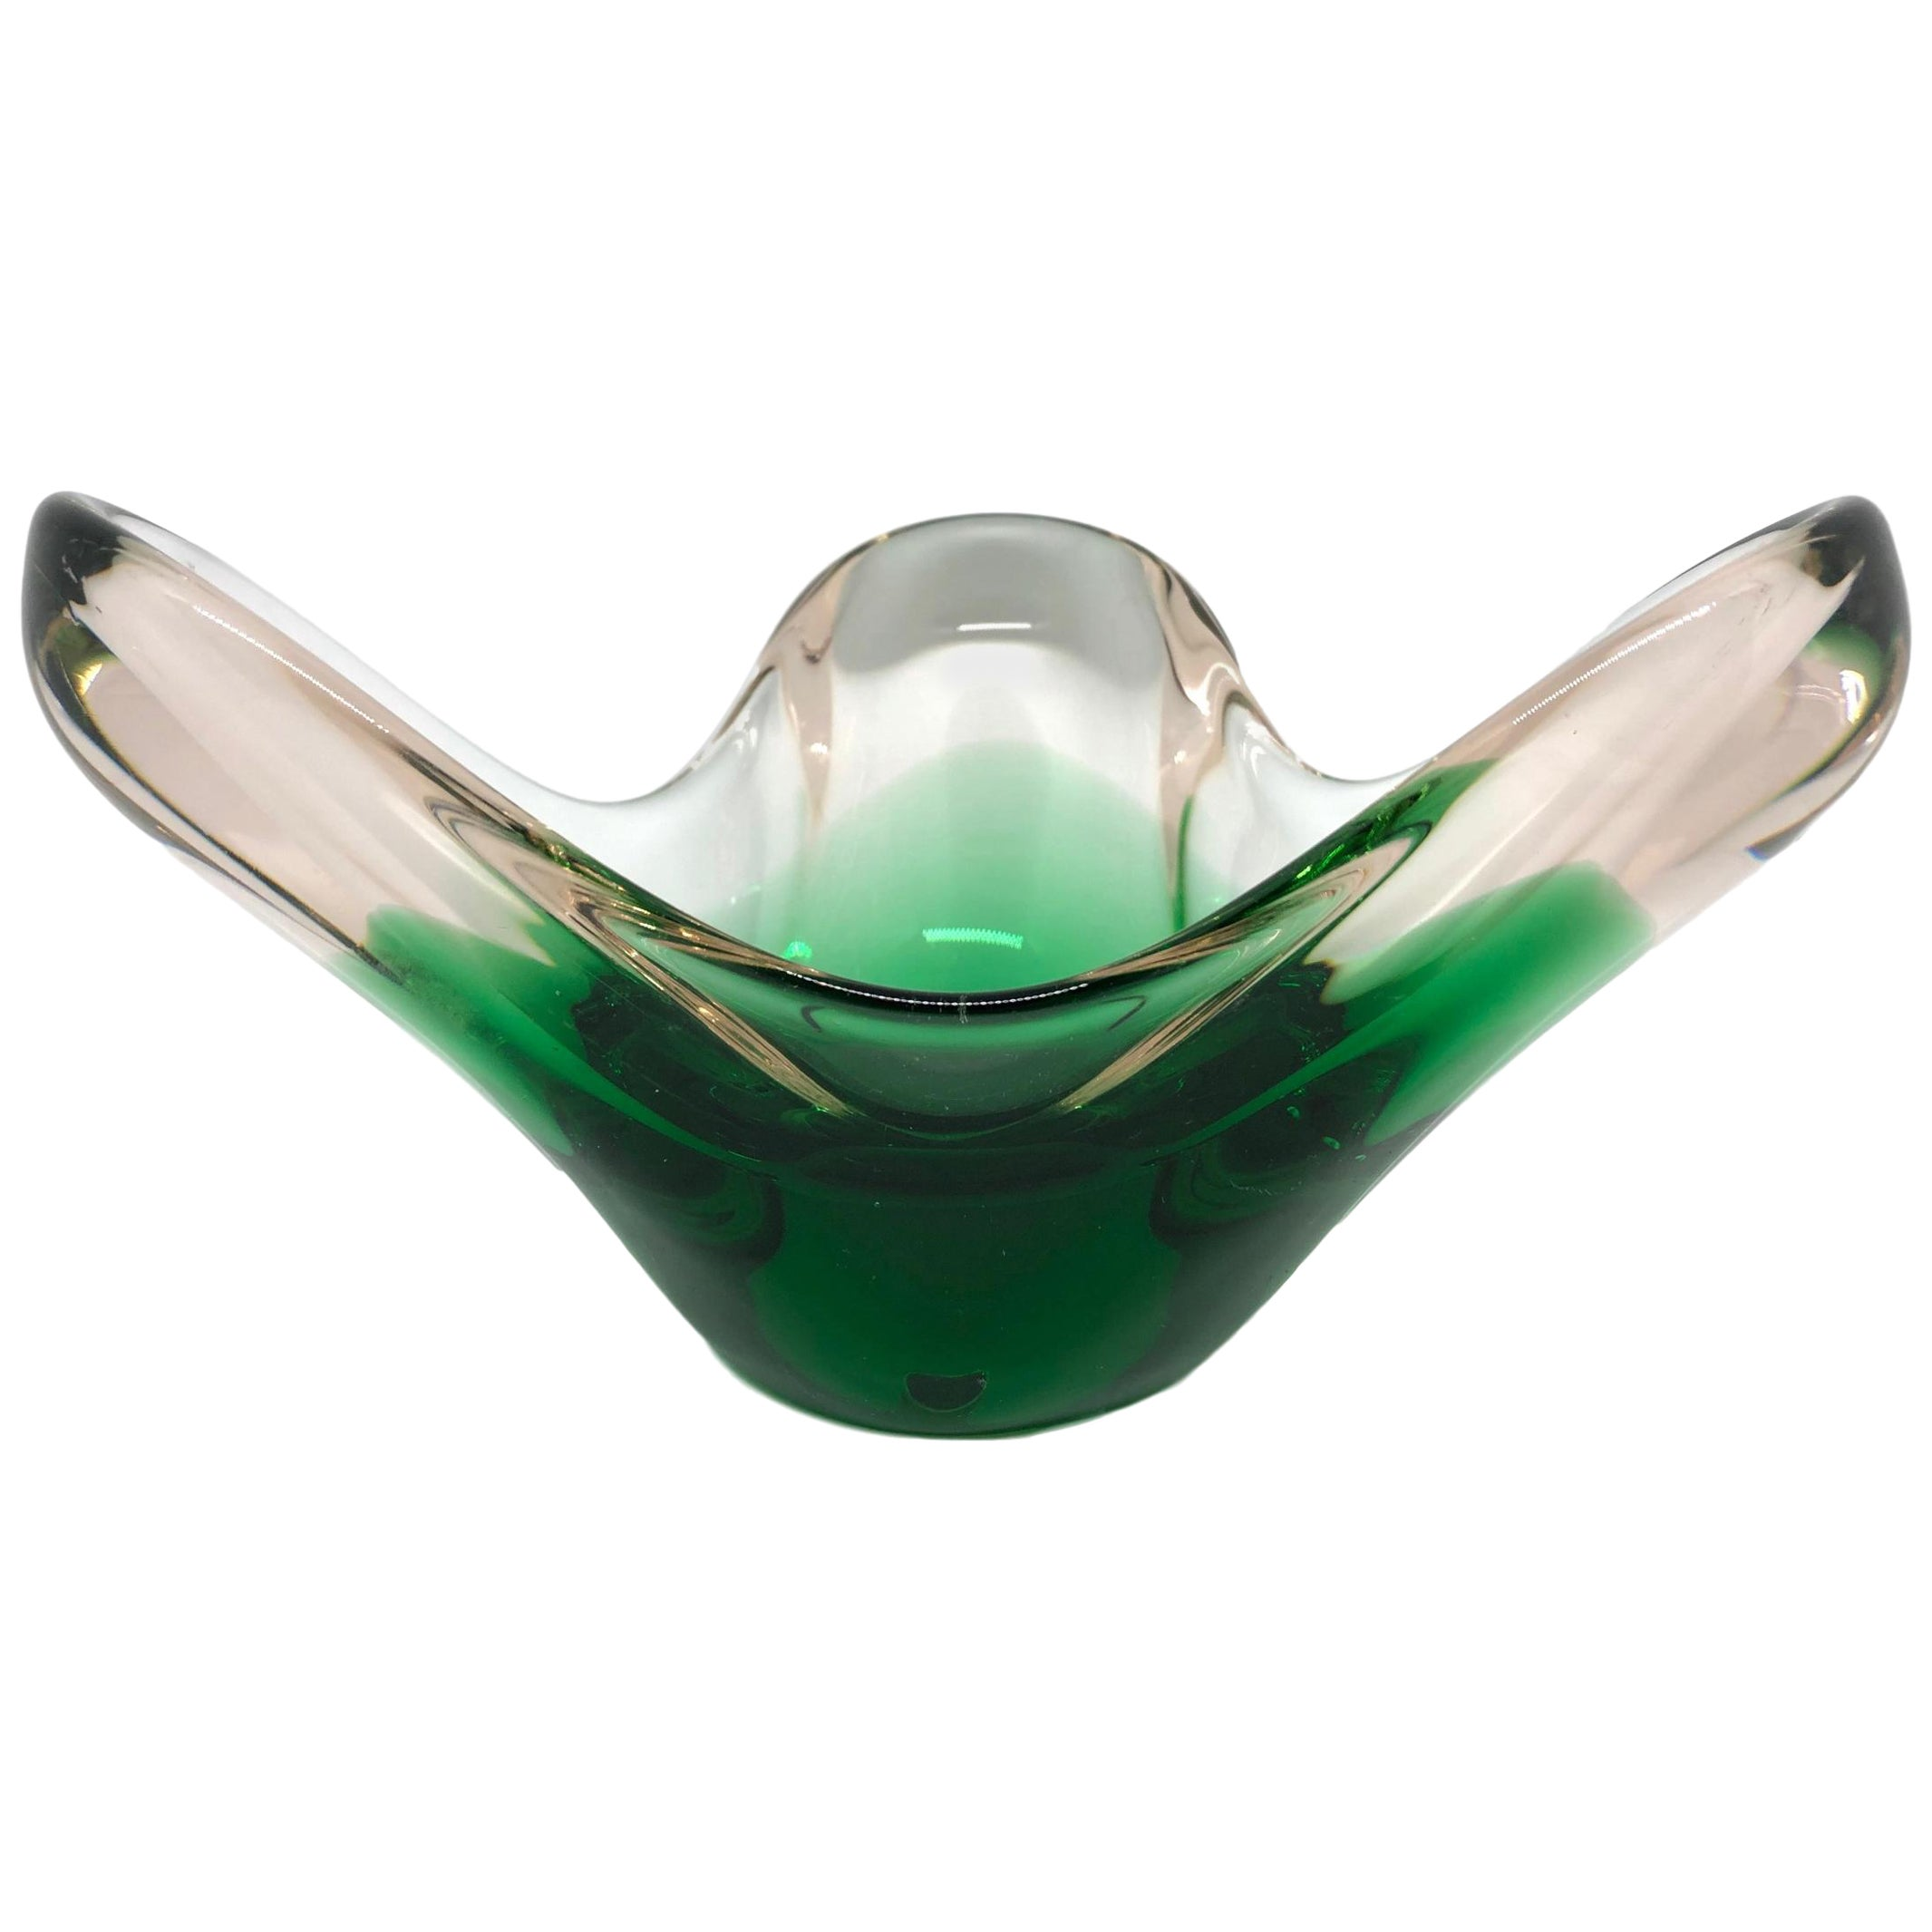 Murano Art Glass Green and Clear Bowl Catchall Italy, Sommerso, 1960s